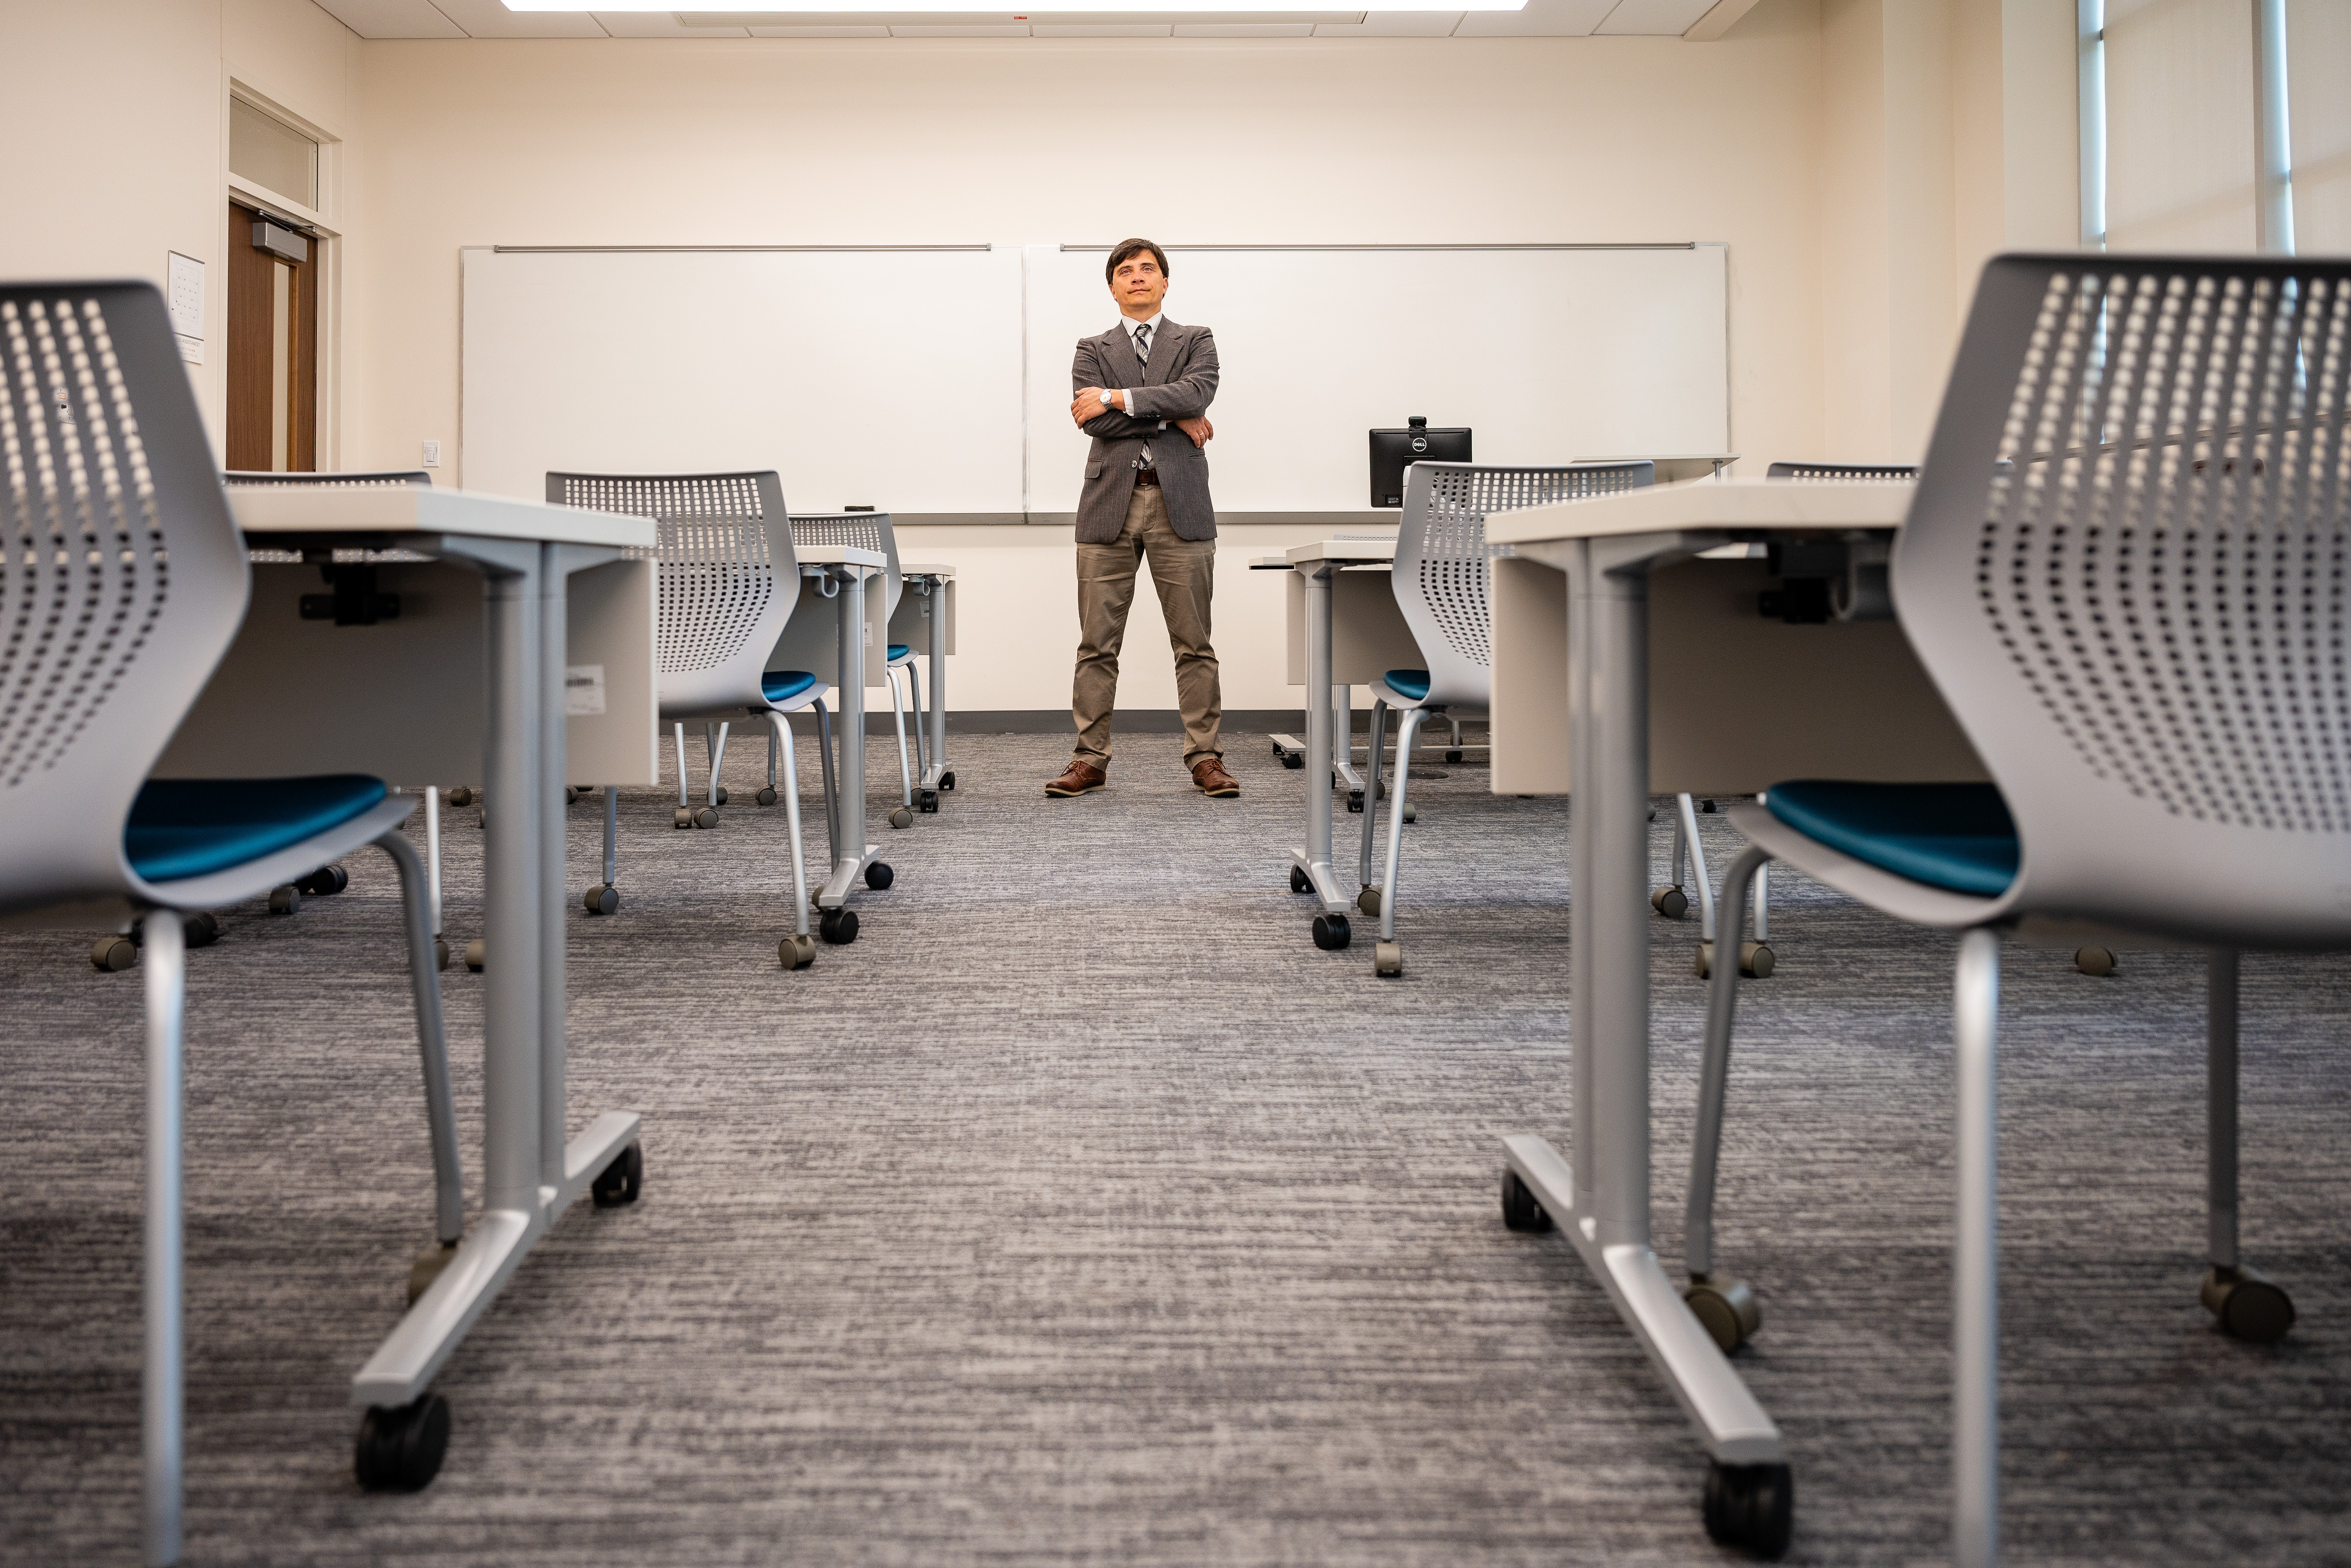 A man stands, arms crossed, in front of a classroom whiteboard. In the foreground, empty chairs.